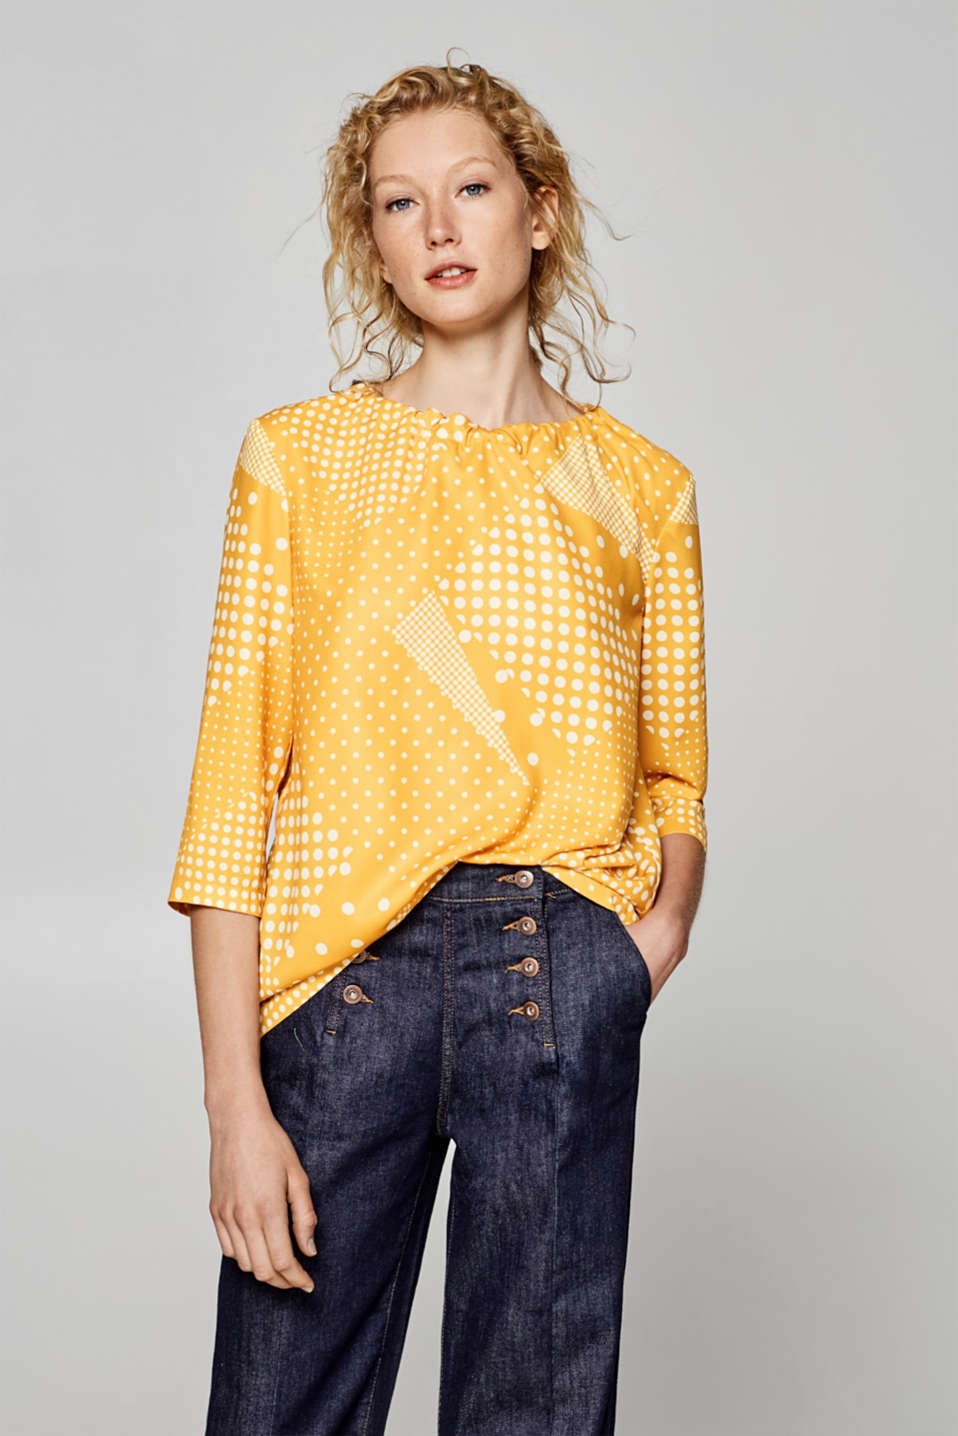 Esprit - Polka dot blouse with a bow at the back